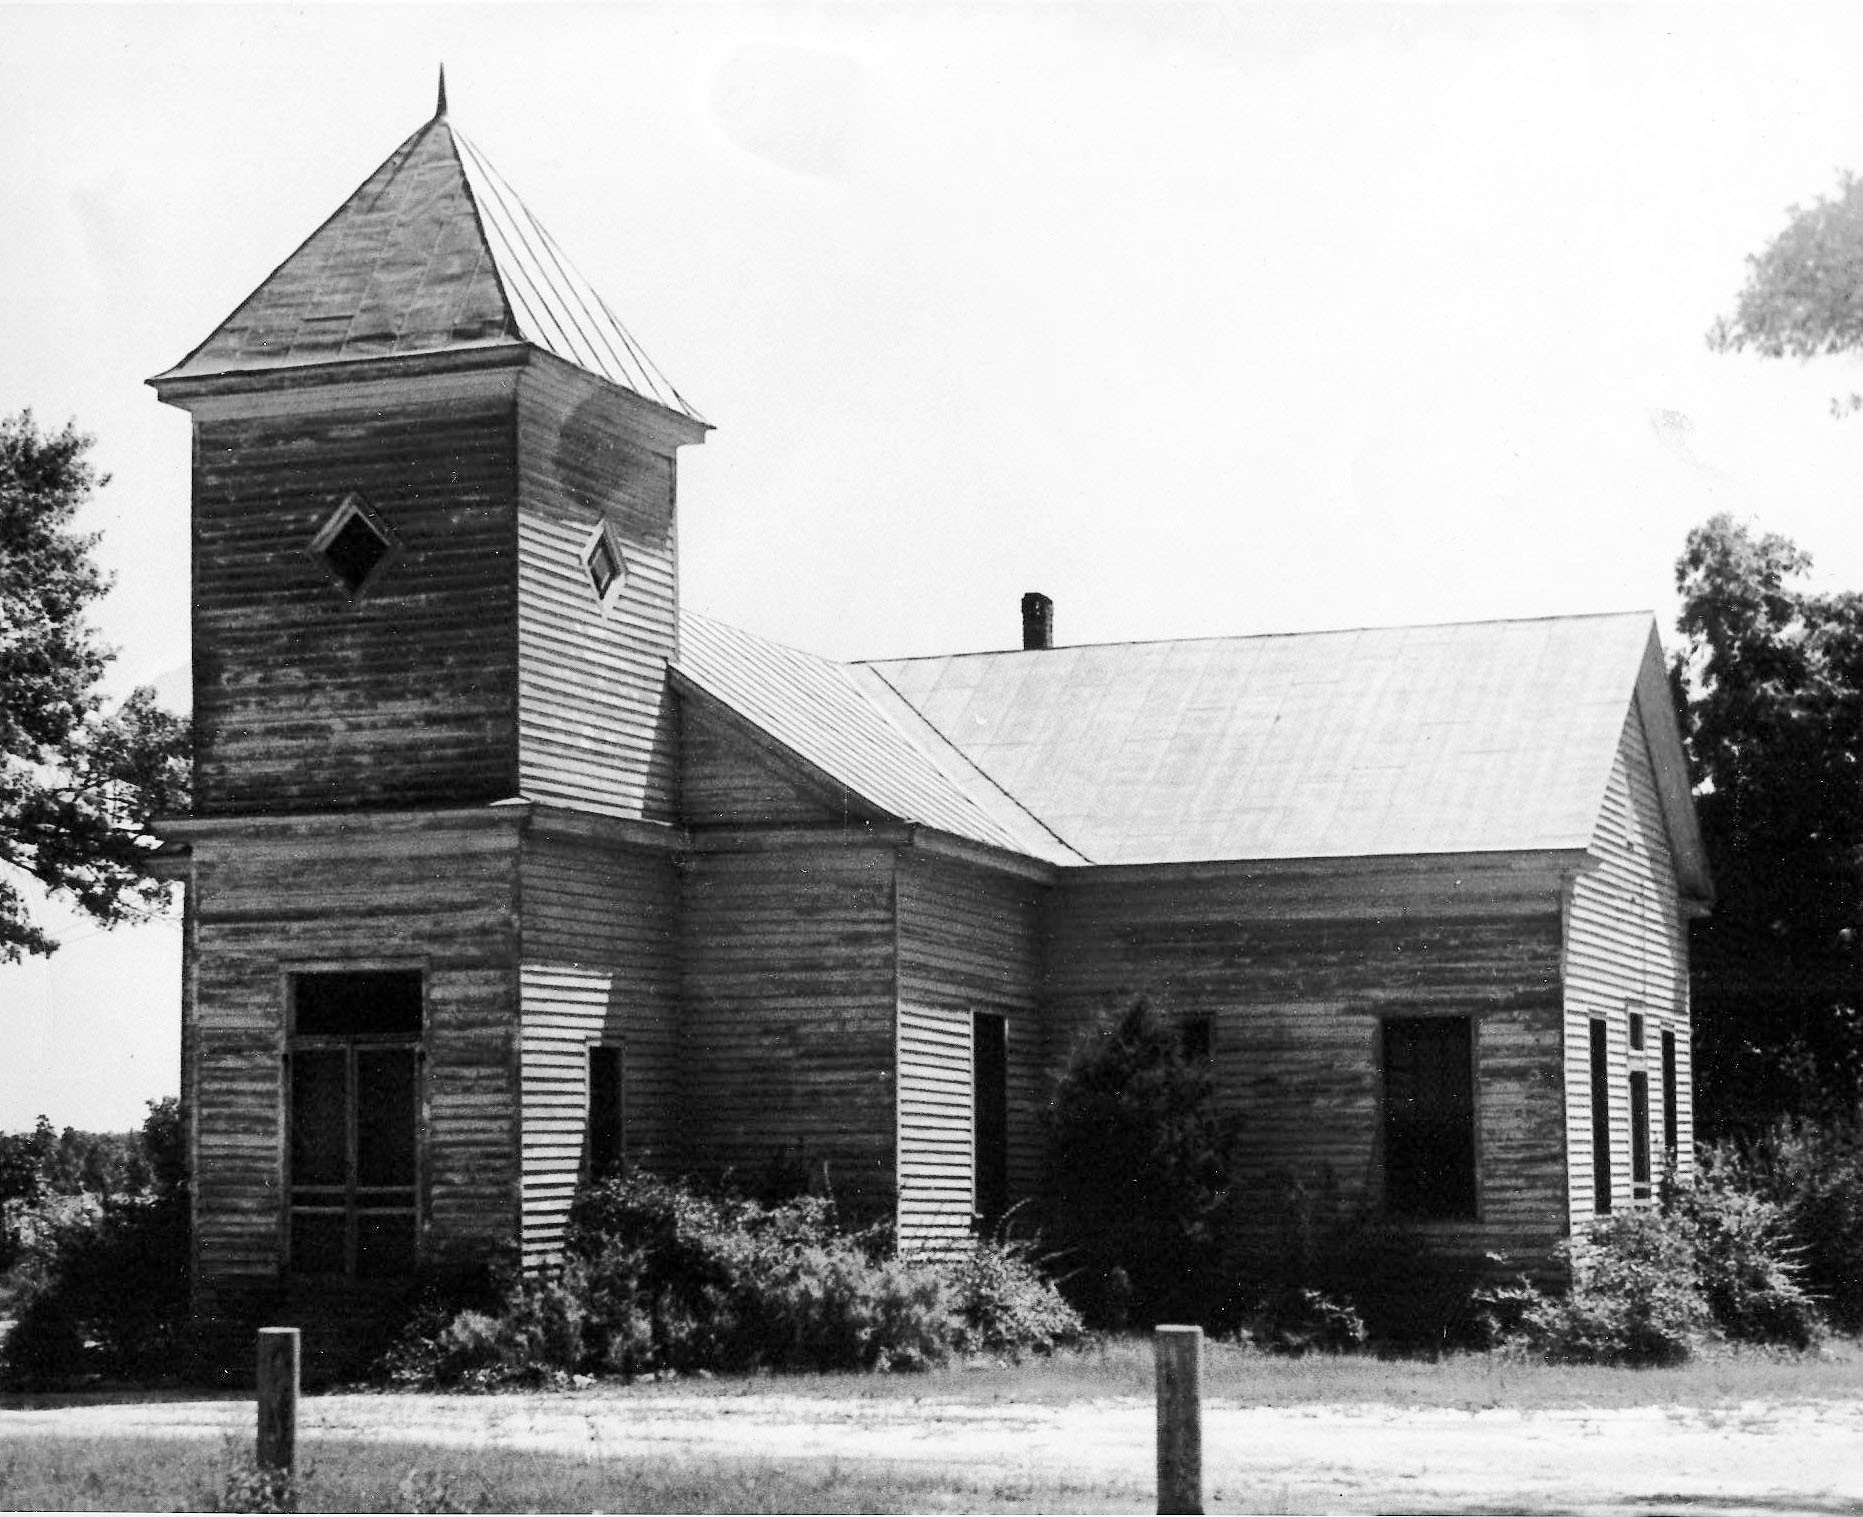 Graham Church, named after the Rev. Noah Graham, was located near Brogdon Station on U.S. 521.